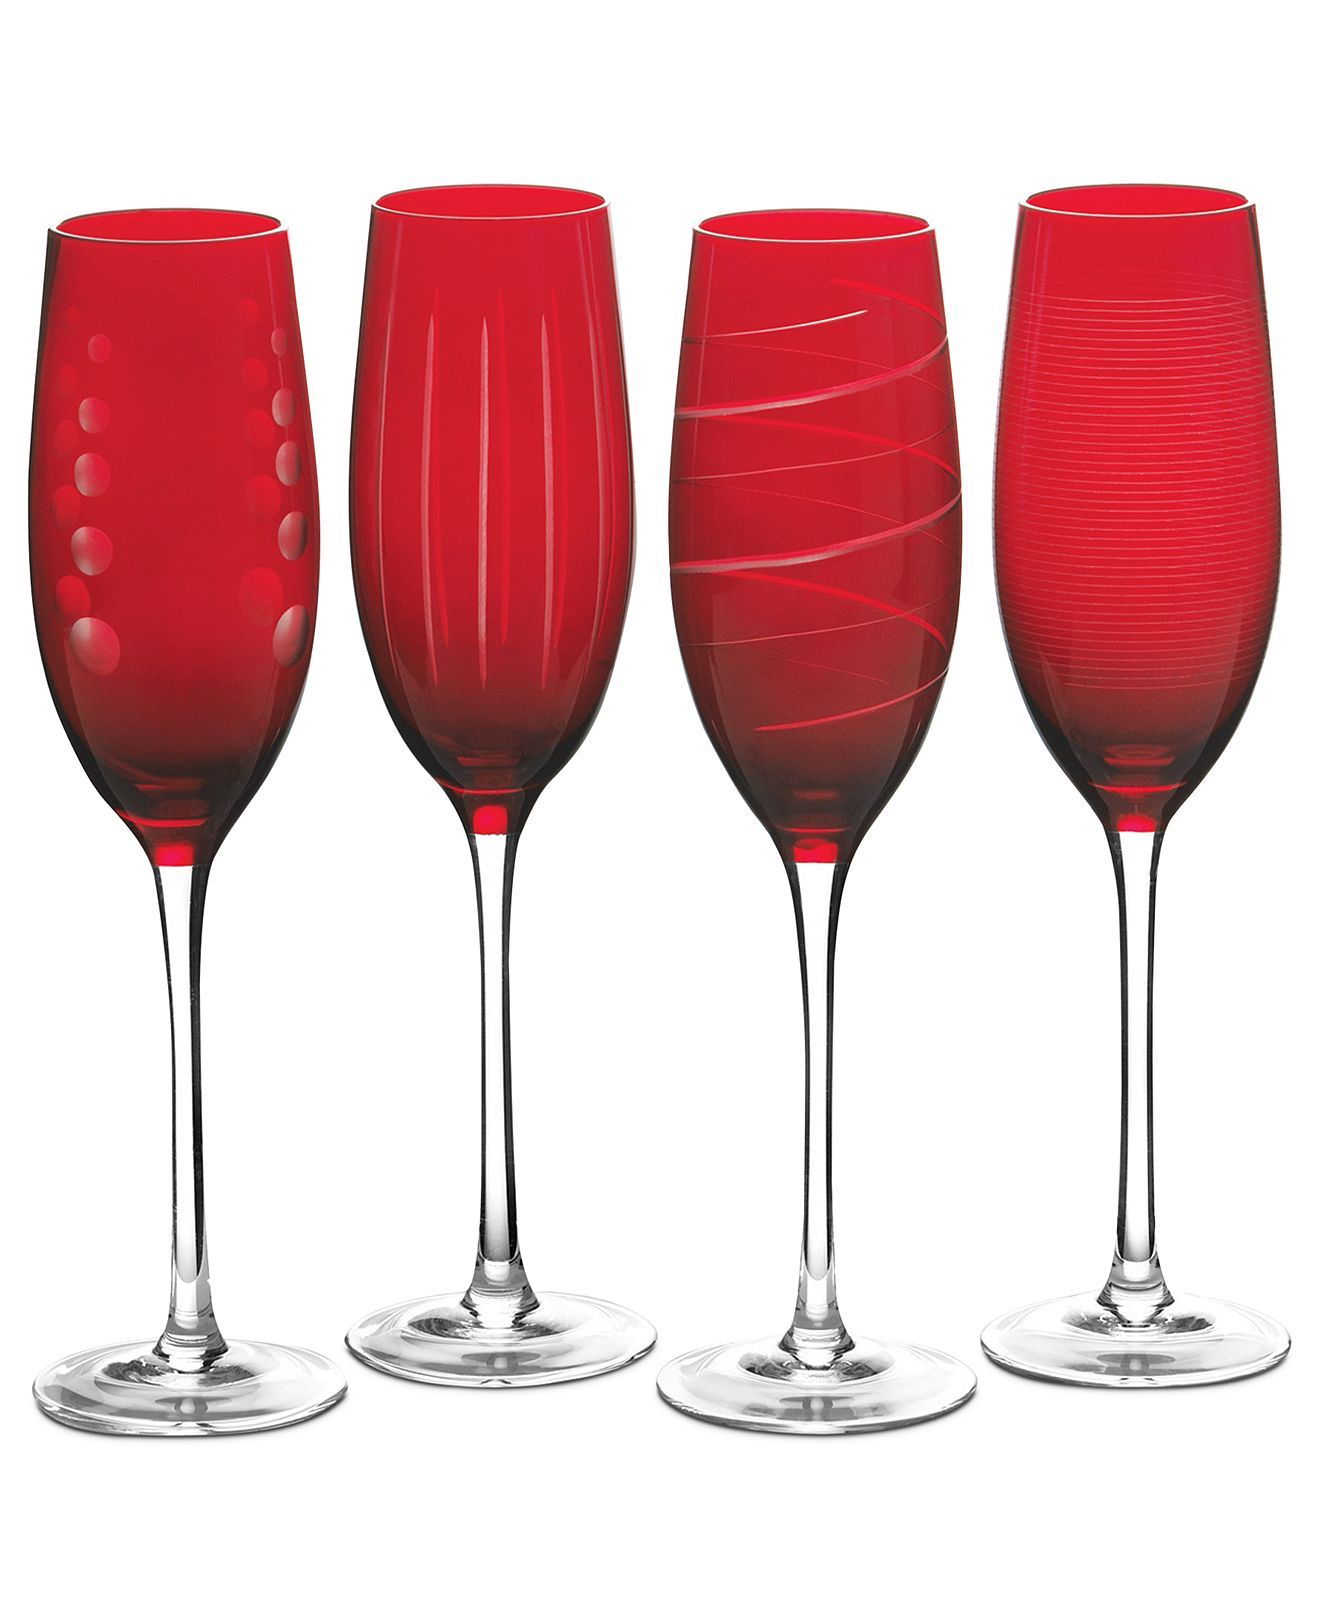 Mikasa Glassware Set Of 4 Cheers Ruby Flutes Macy S Glassware Flute Glass Glass